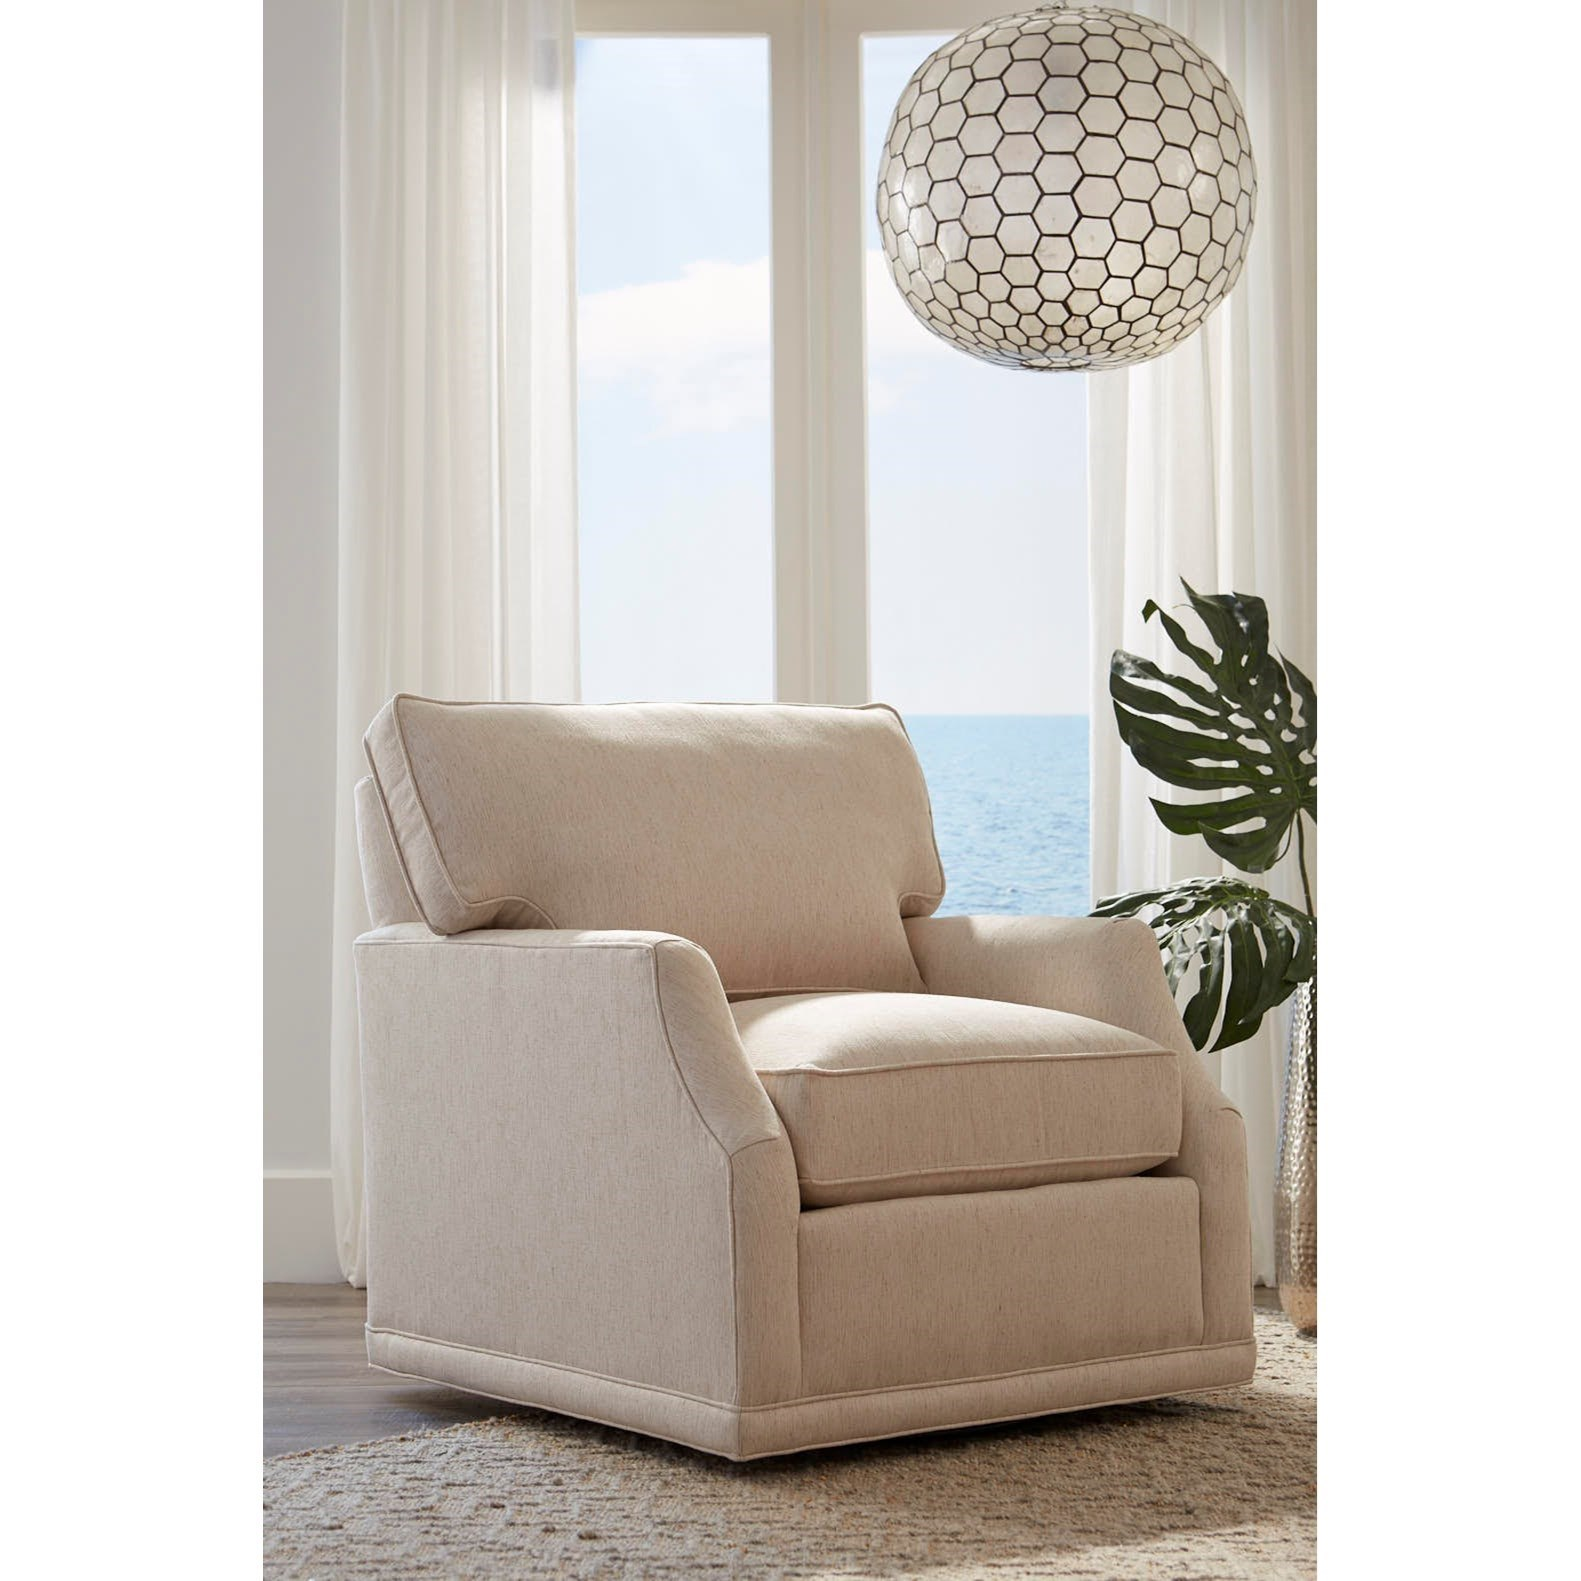 Rowe My Style II Customizable Chair With Scooped Arms, Swivel Base And Box  Edge Back